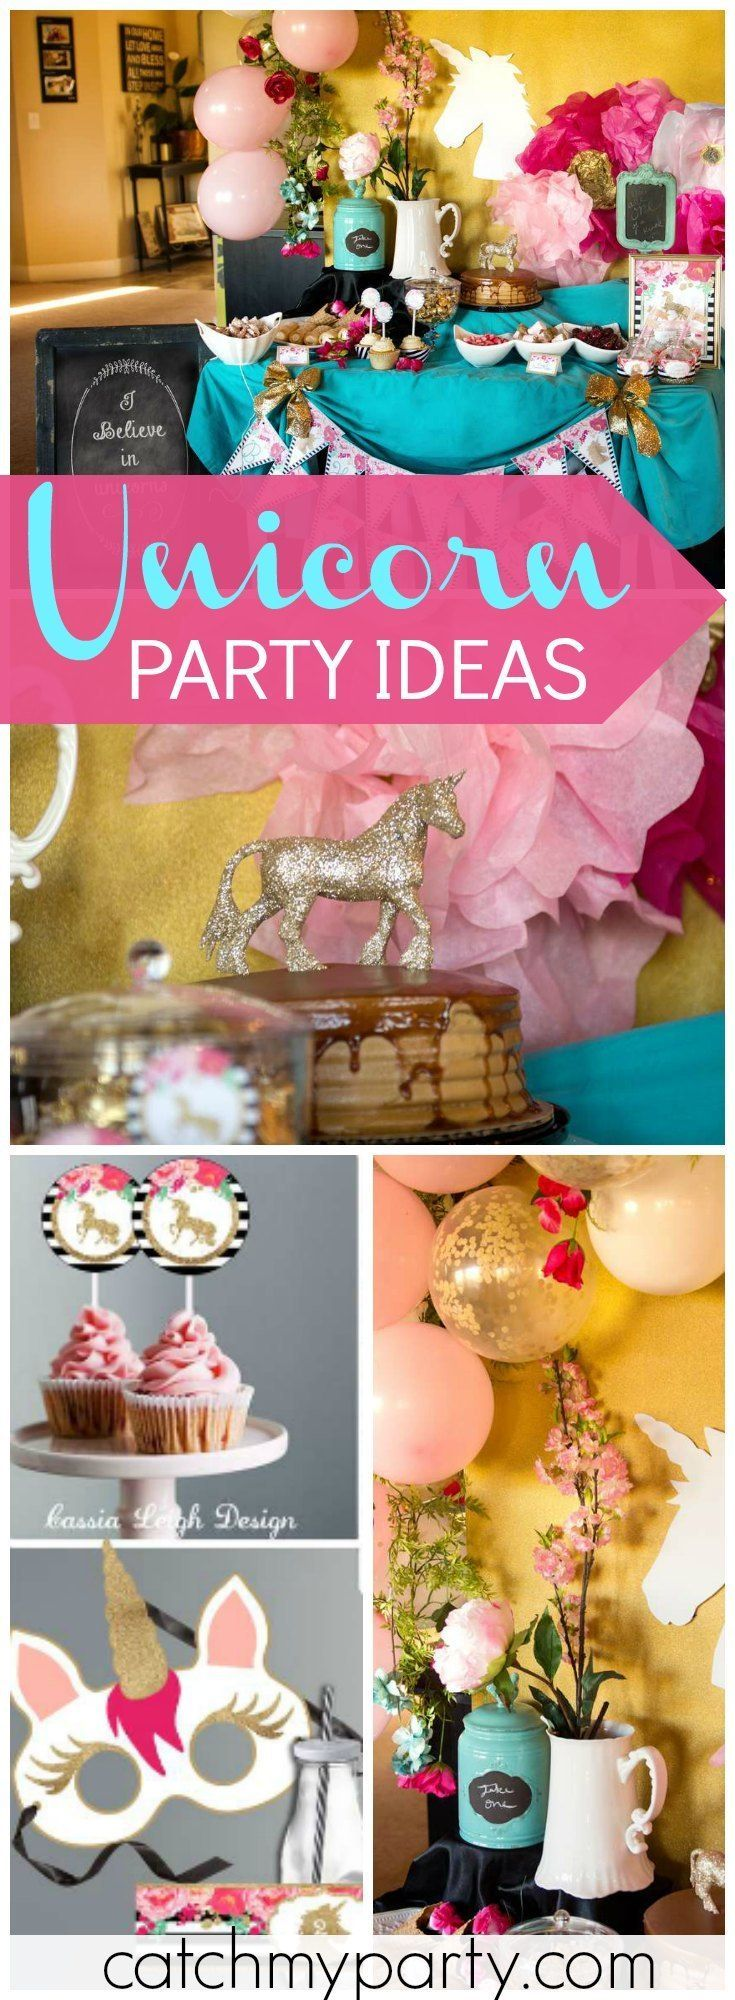 Here's a magical, unicorn party that is gorgeous and elegant! See more party ideas at http://Catchmyparty.com!